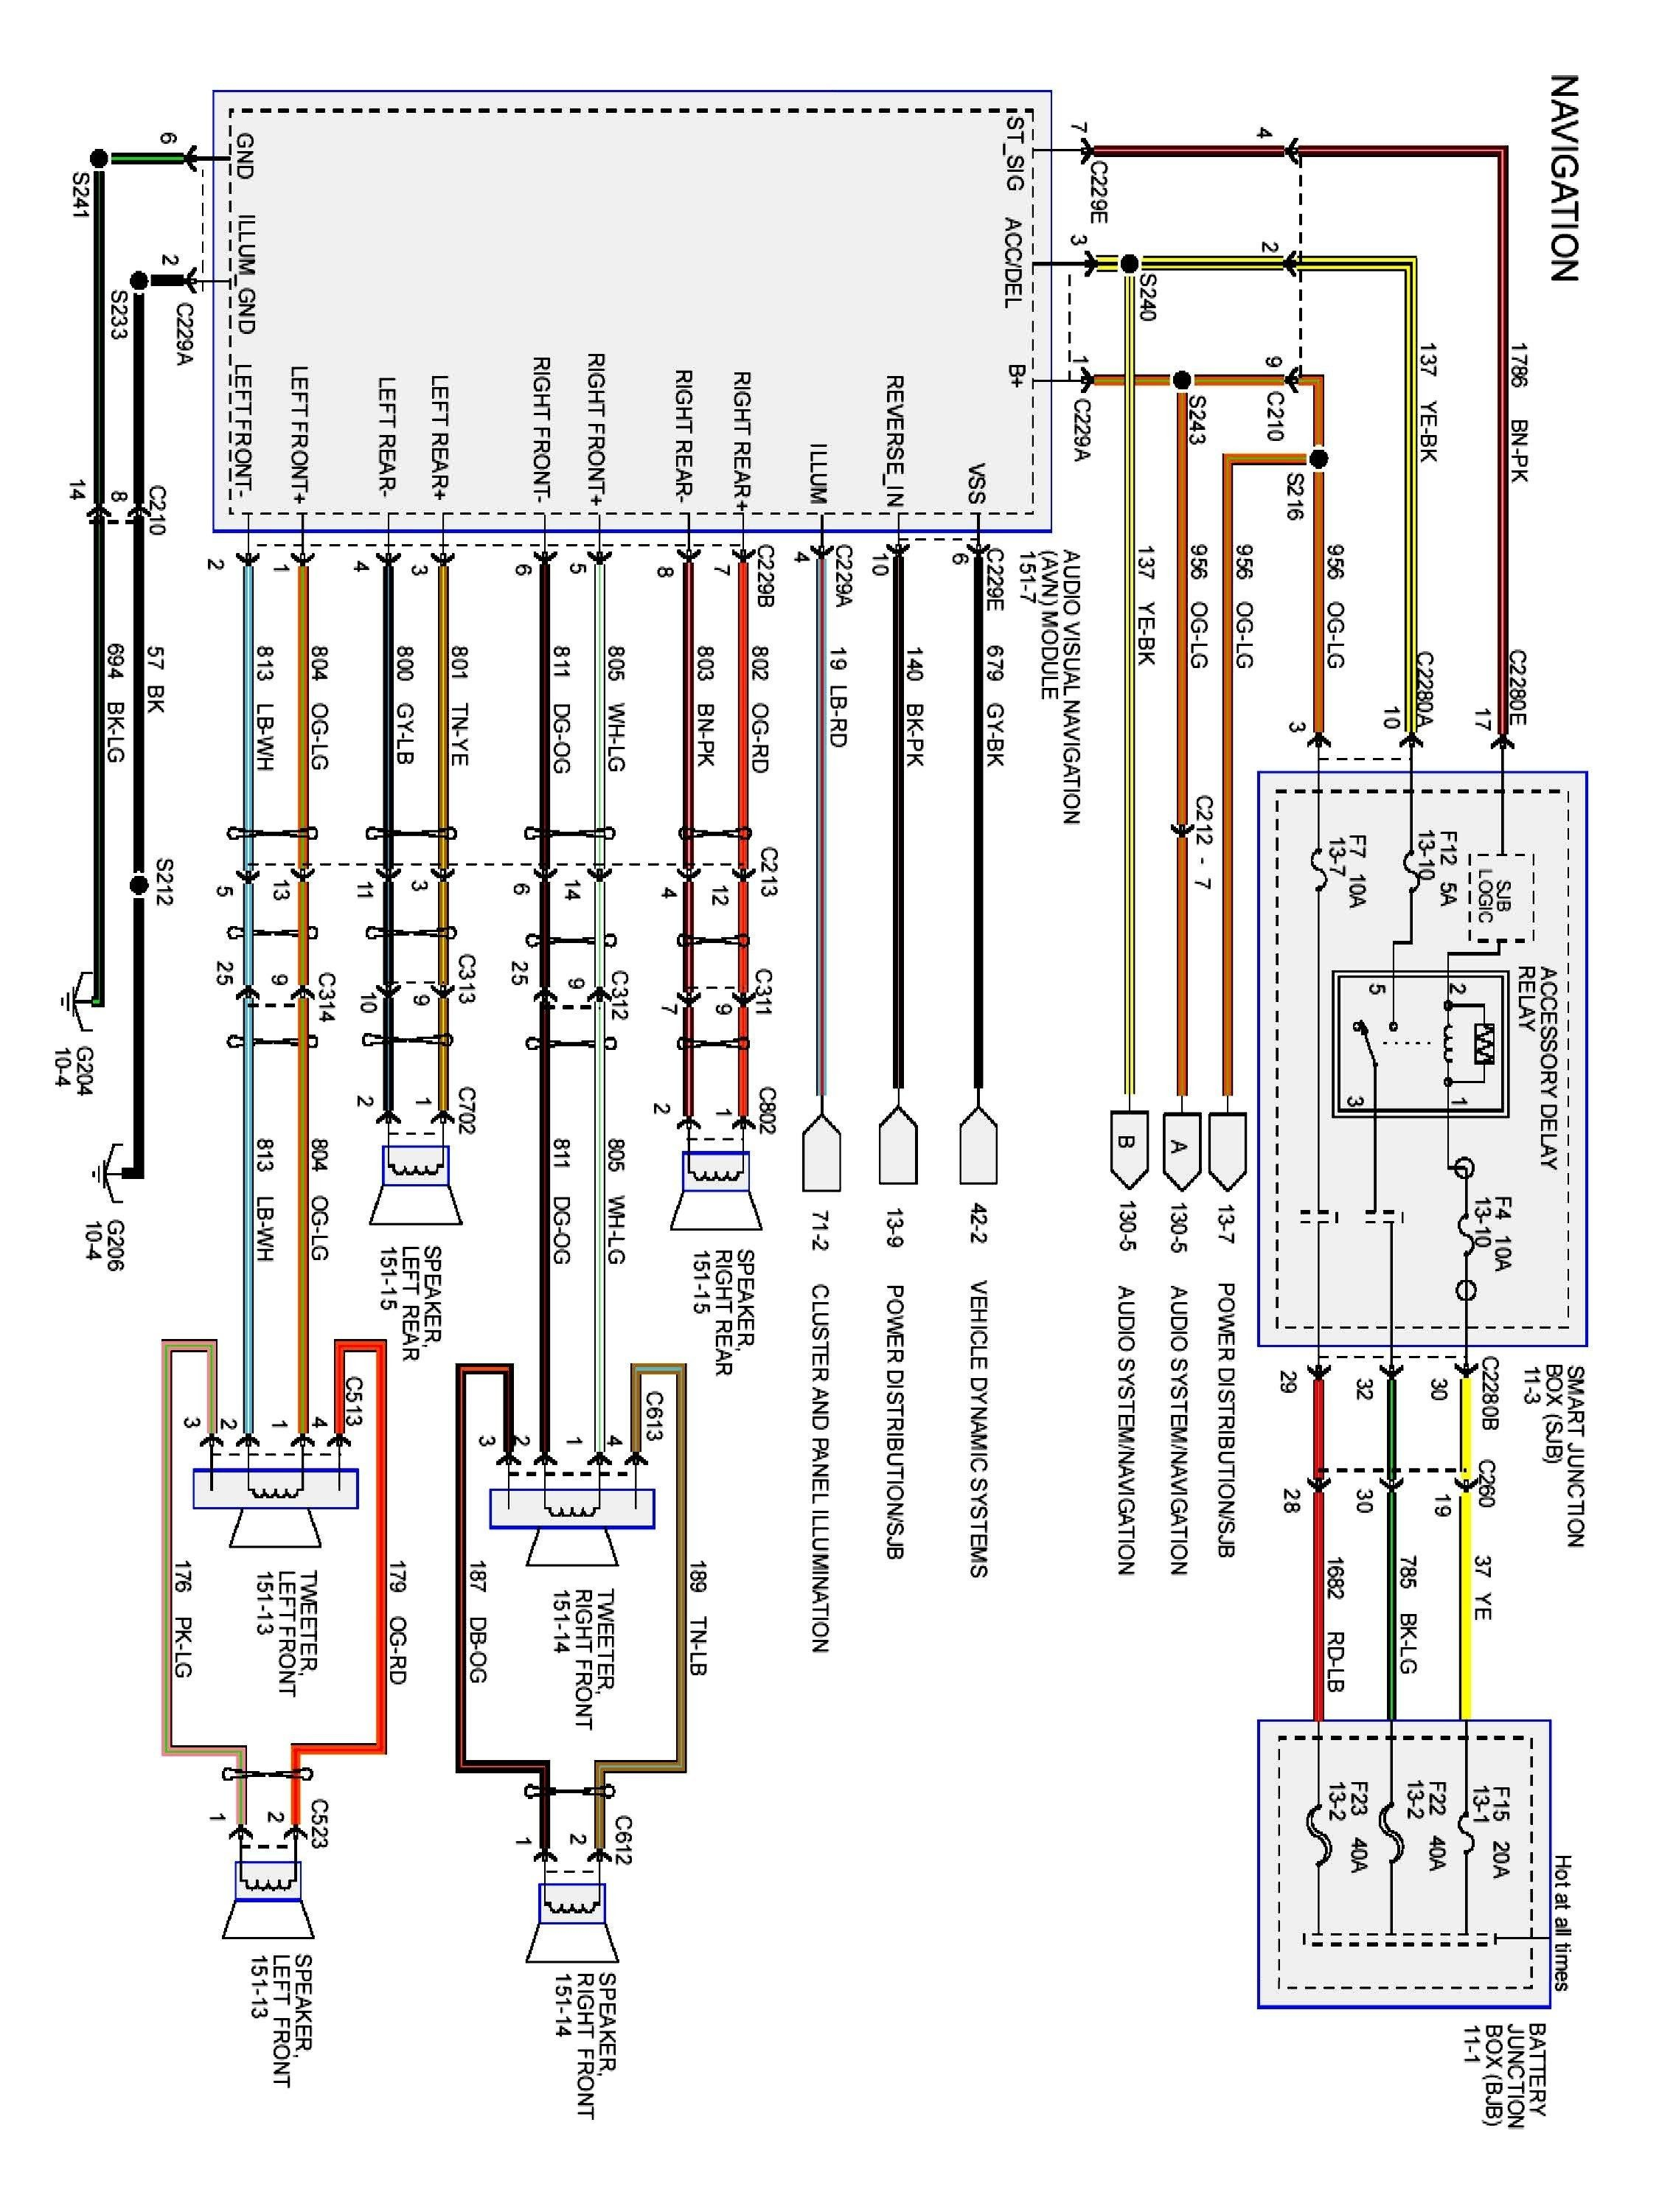 ford focus wiring diagram 2002 | wiring diagram files supply  poster quotidiano